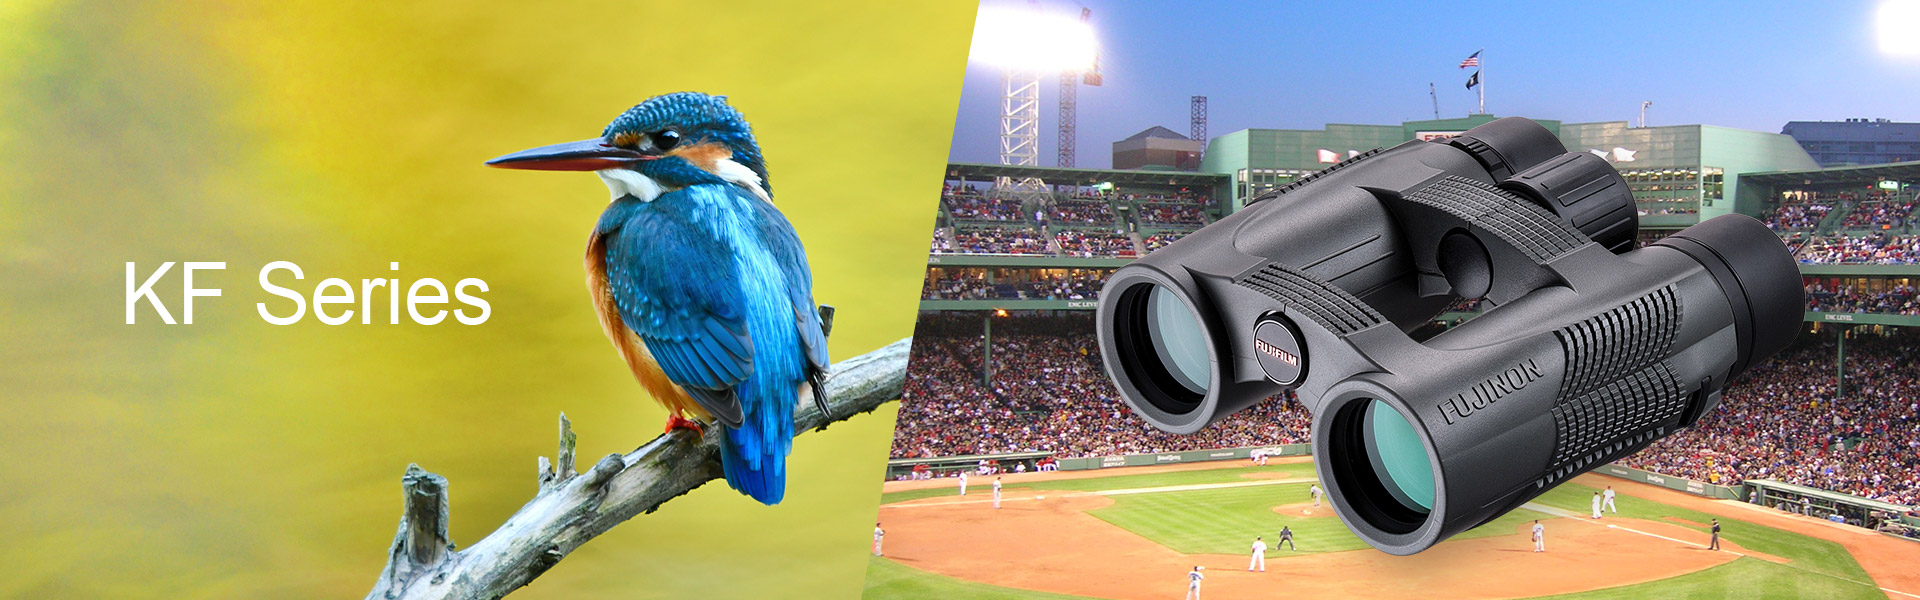 KF Series binocular over image collage of baseball stadium and bird on the branch